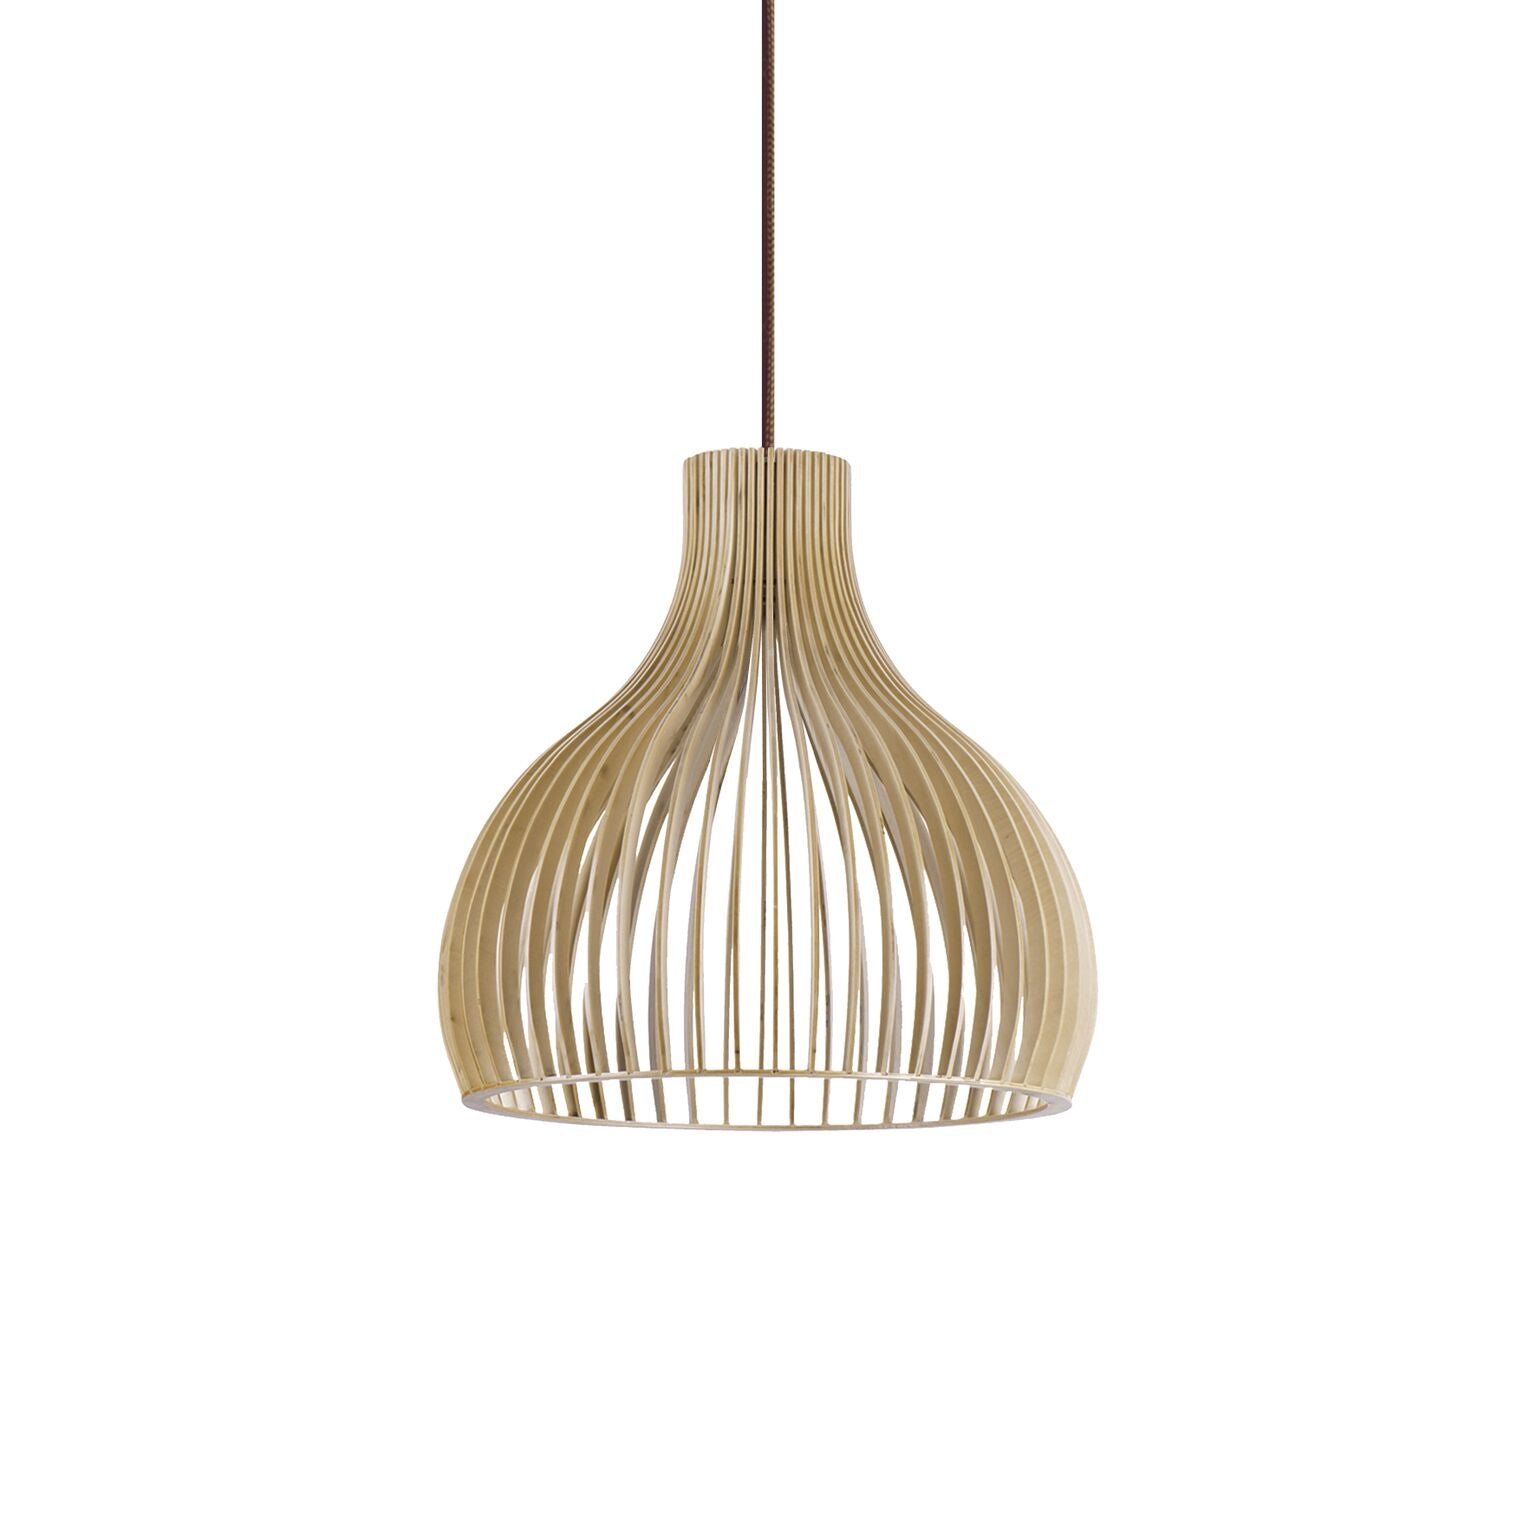 Finsbury Park Ceiling Light - David Malik & Son